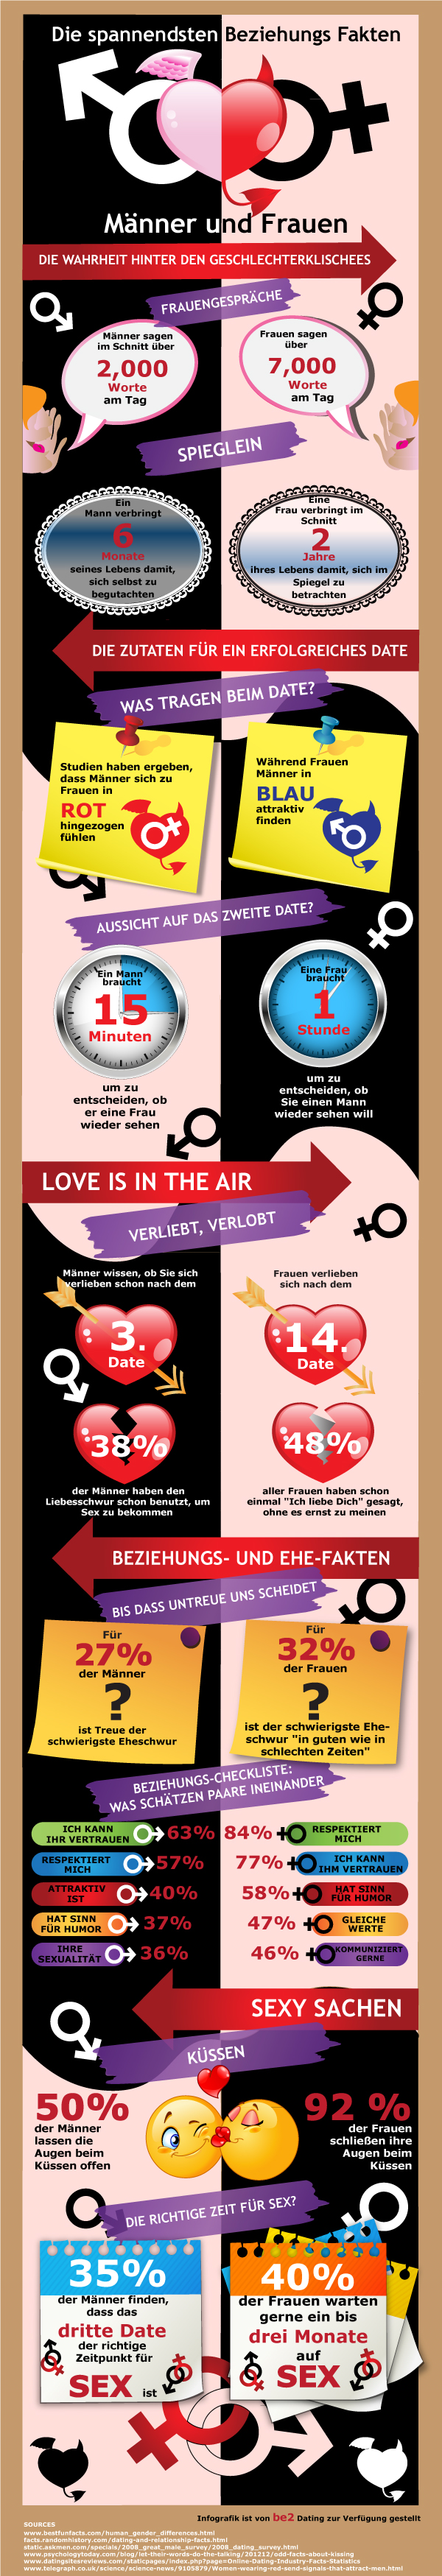 relationship facts revealed infographic